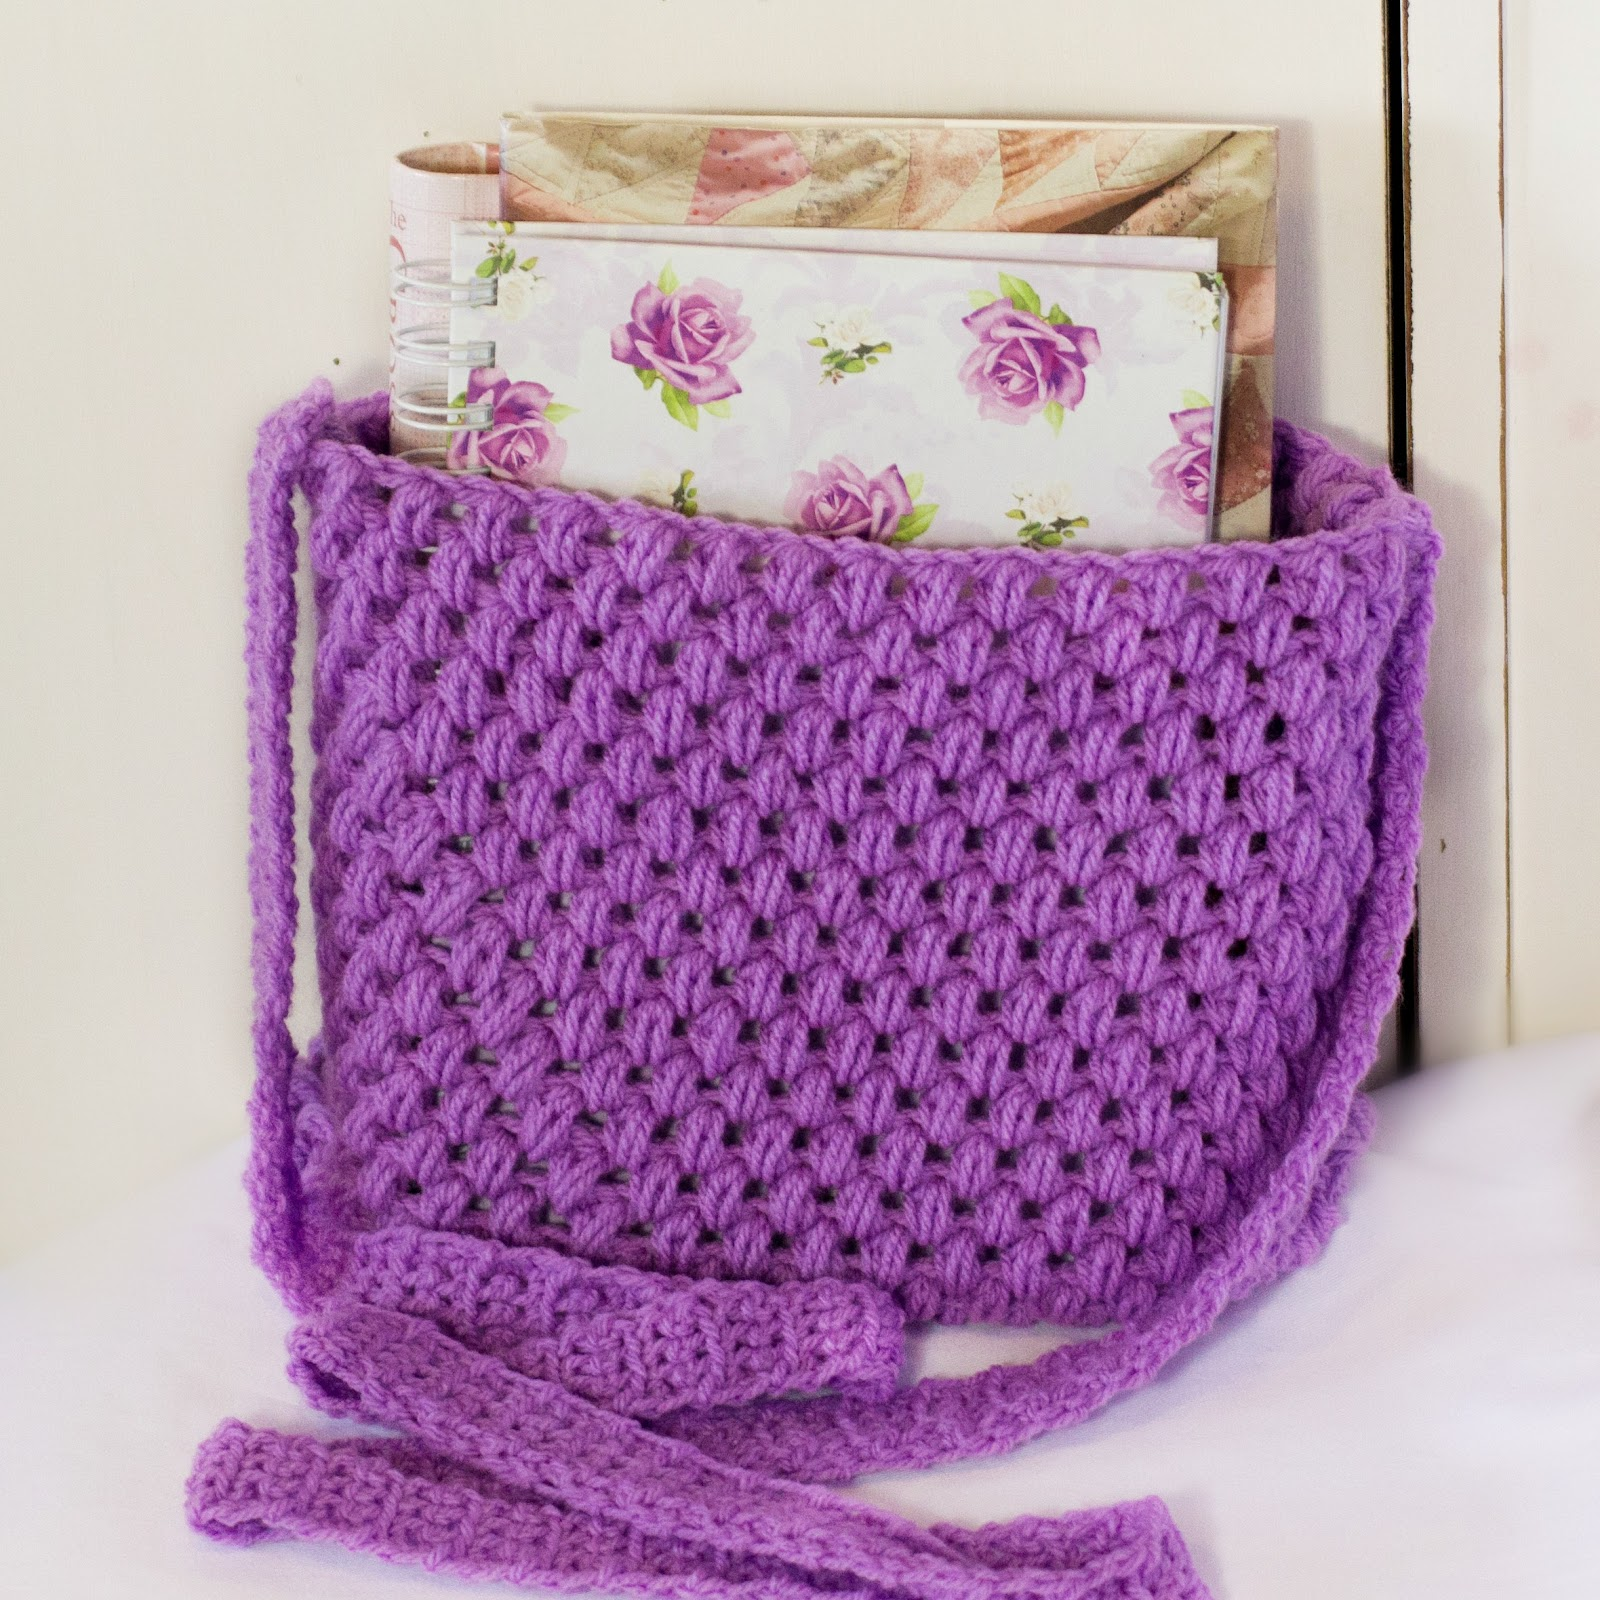 Crochet Ladies Bags : Hopeful Honey Craft, Crochet, Create: March 2012